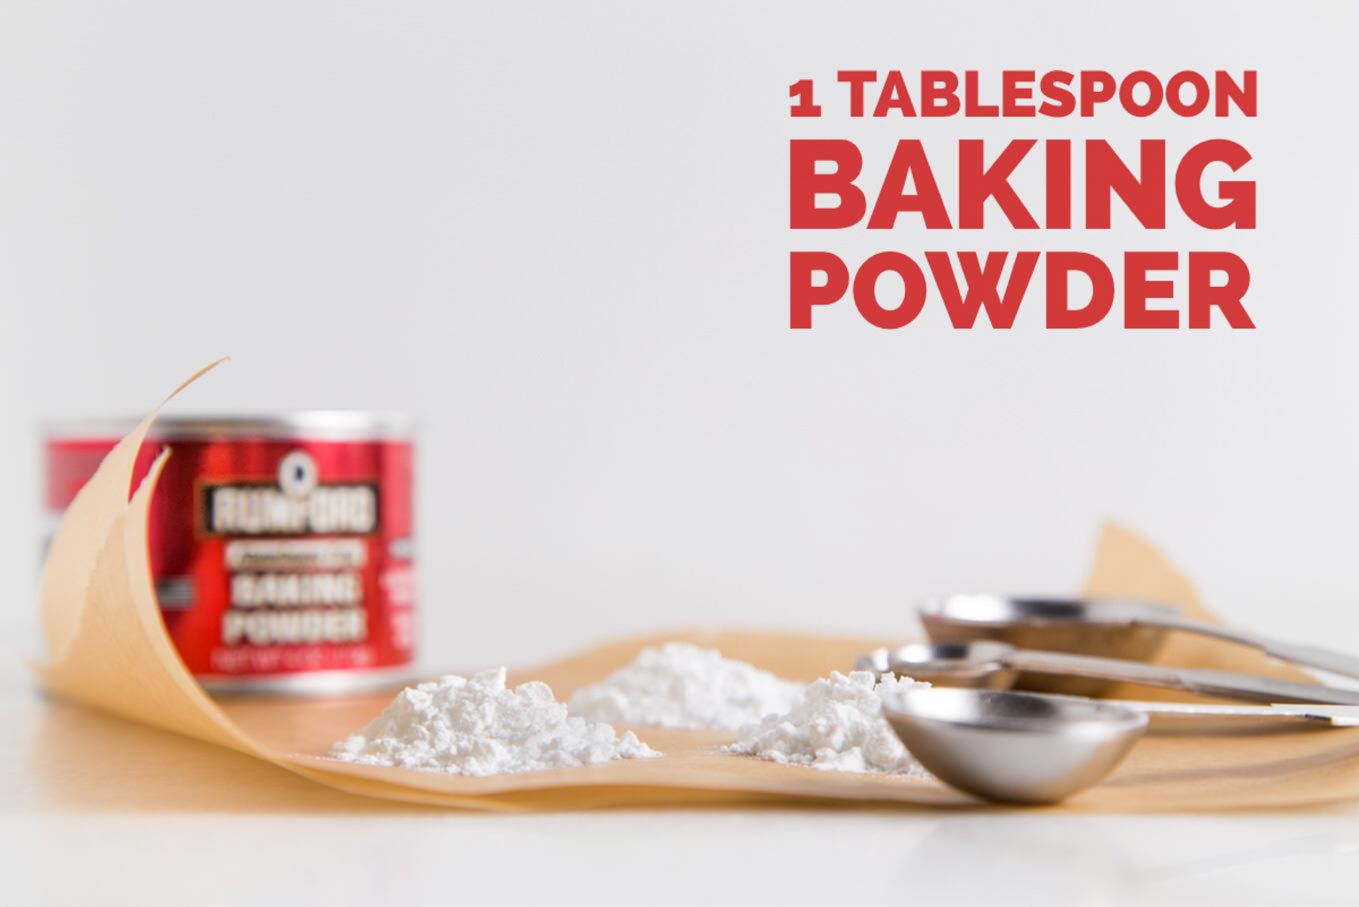 Biscuits 101 on SouthernFATTY.com - Baking Powder